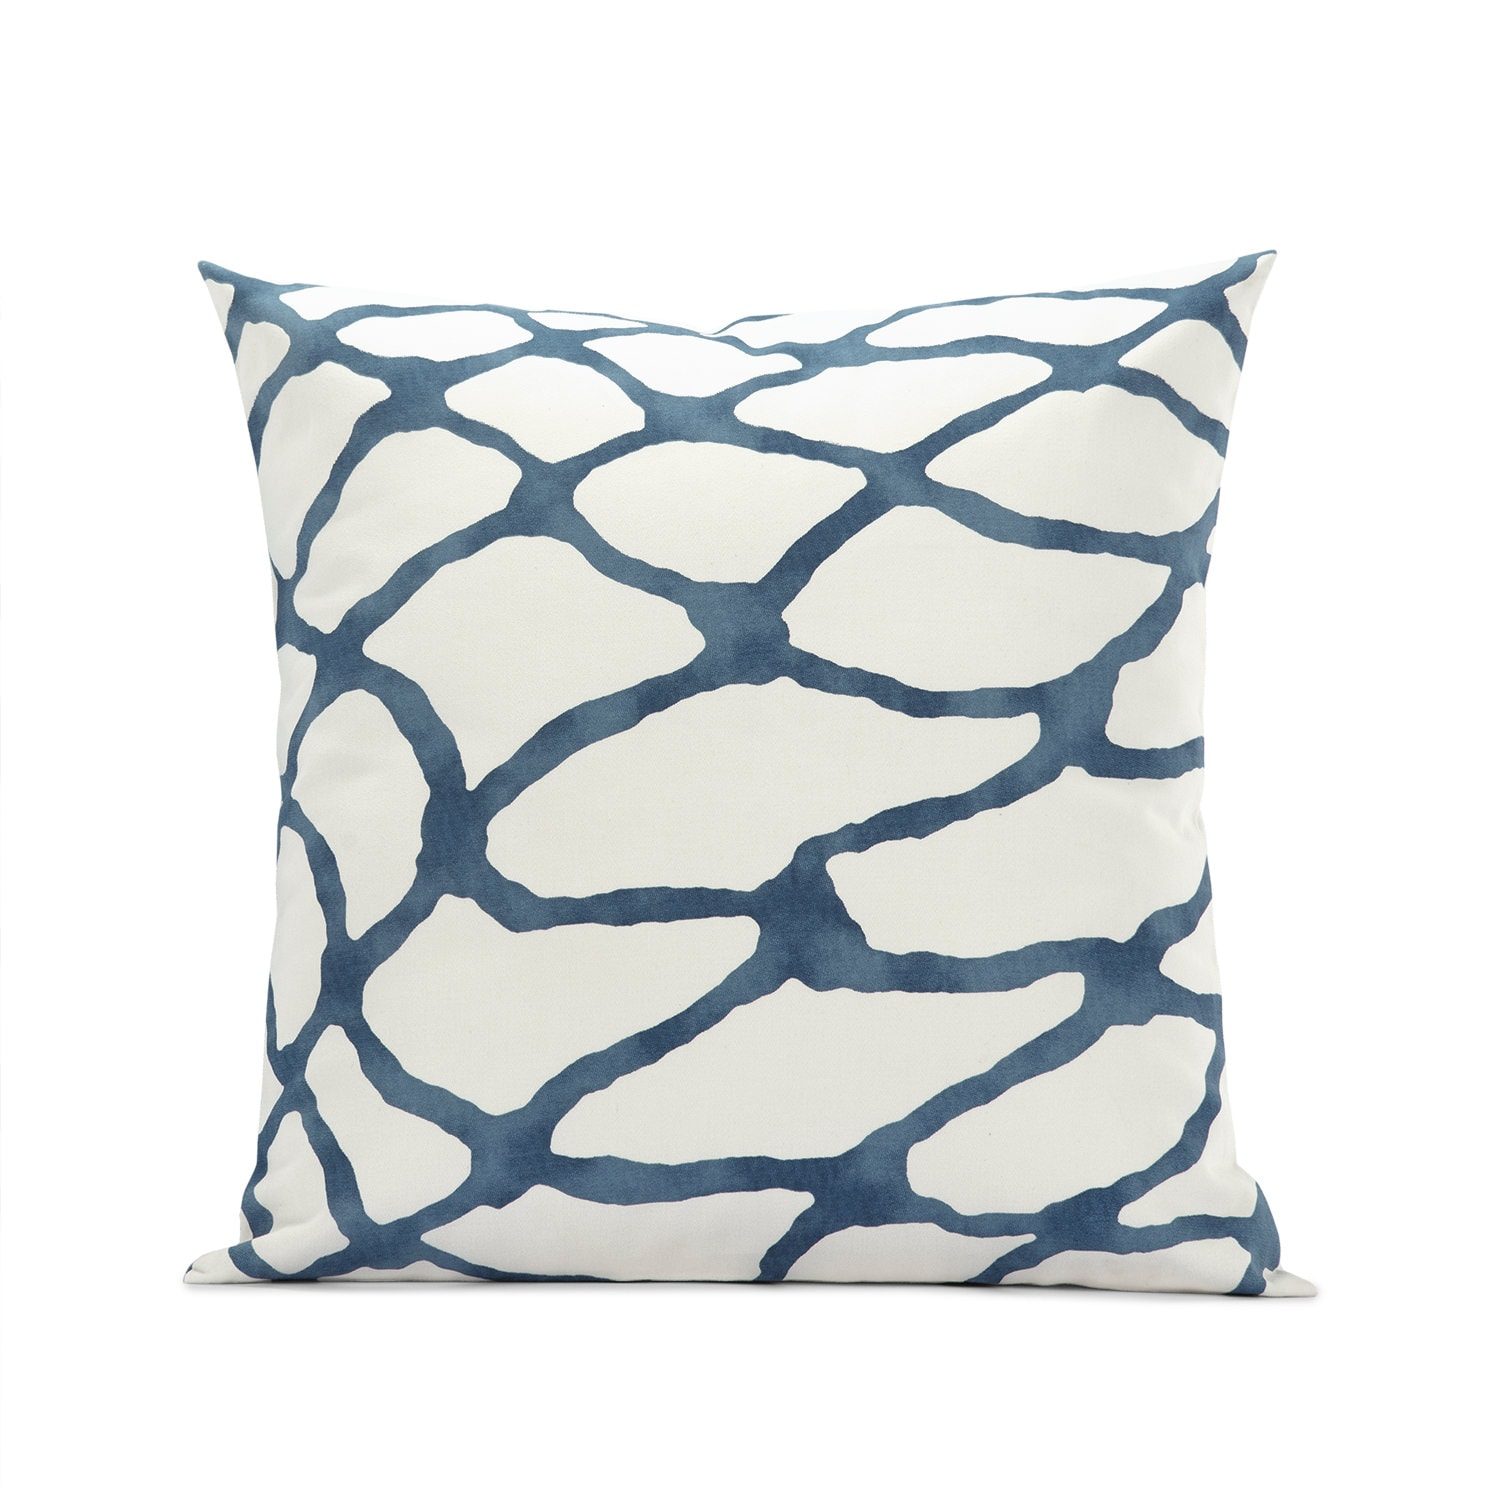 Ellis Blue Printed Cotton Cushion Covers - PAIR